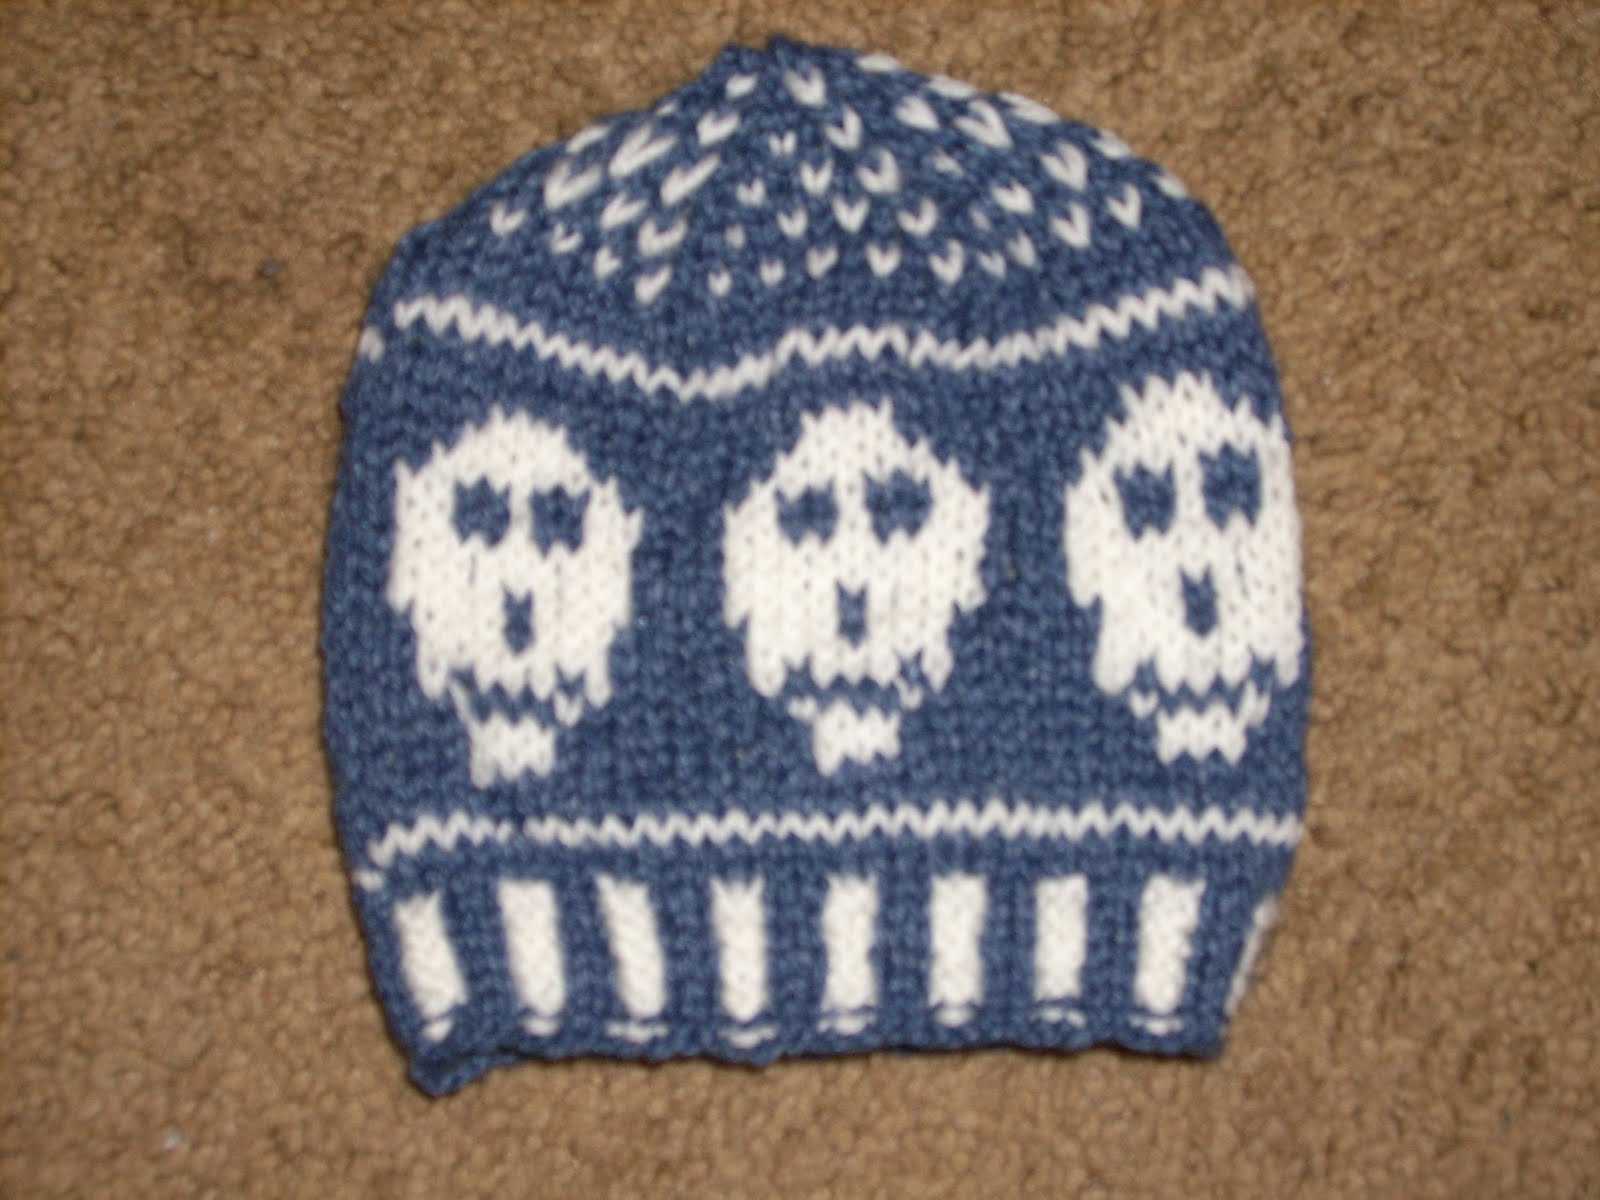 Crochet Pattern Testers : SmoothFox Crochet and Knit: Testers Pictures of 2 knit hat ...